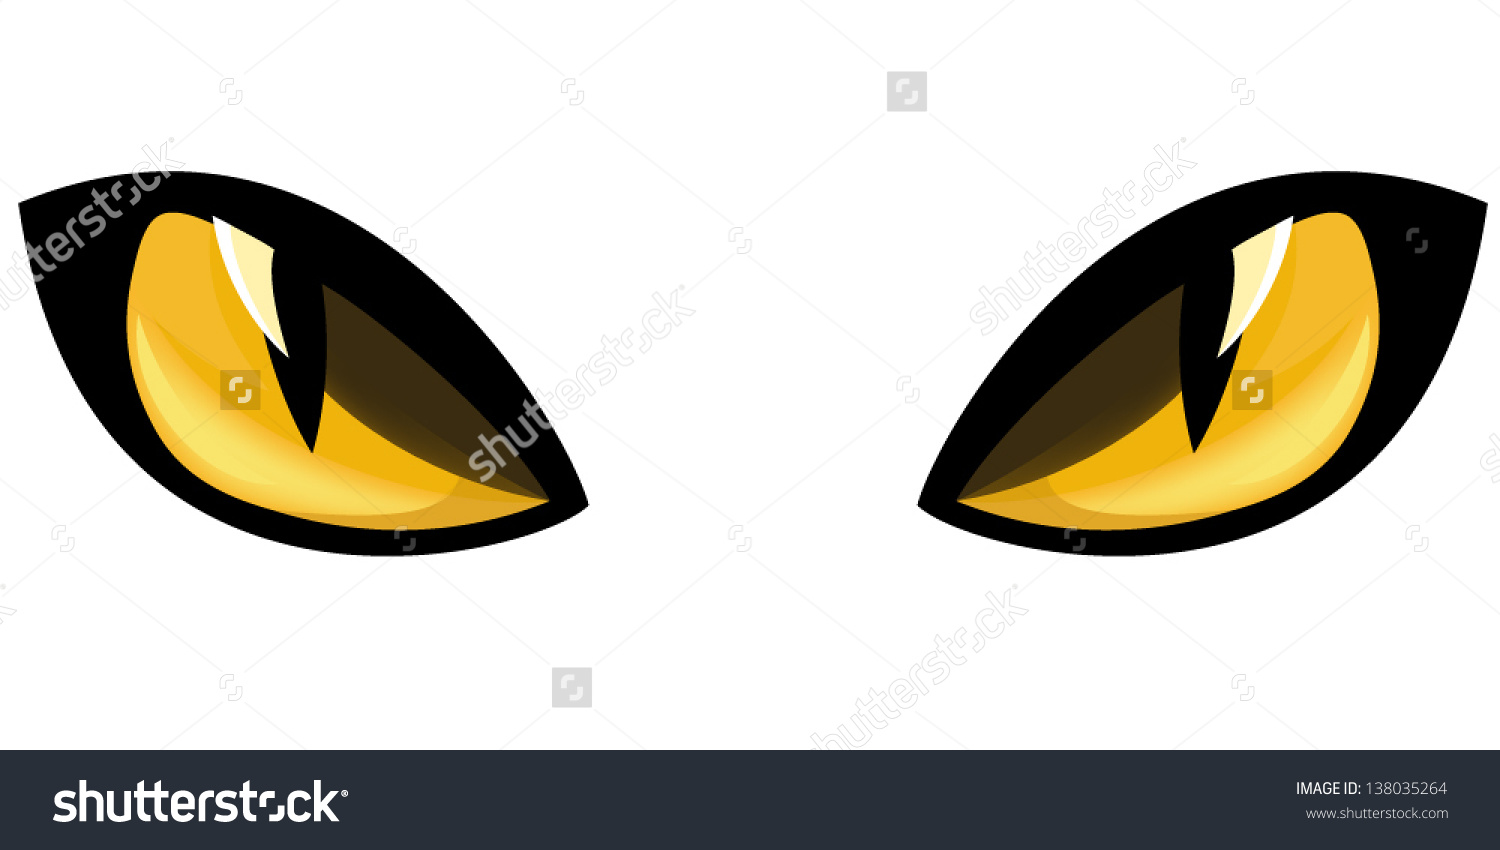 scary eyes clipart at getdrawings com free for personal monster eyes clip art cookie monster eyes clipart